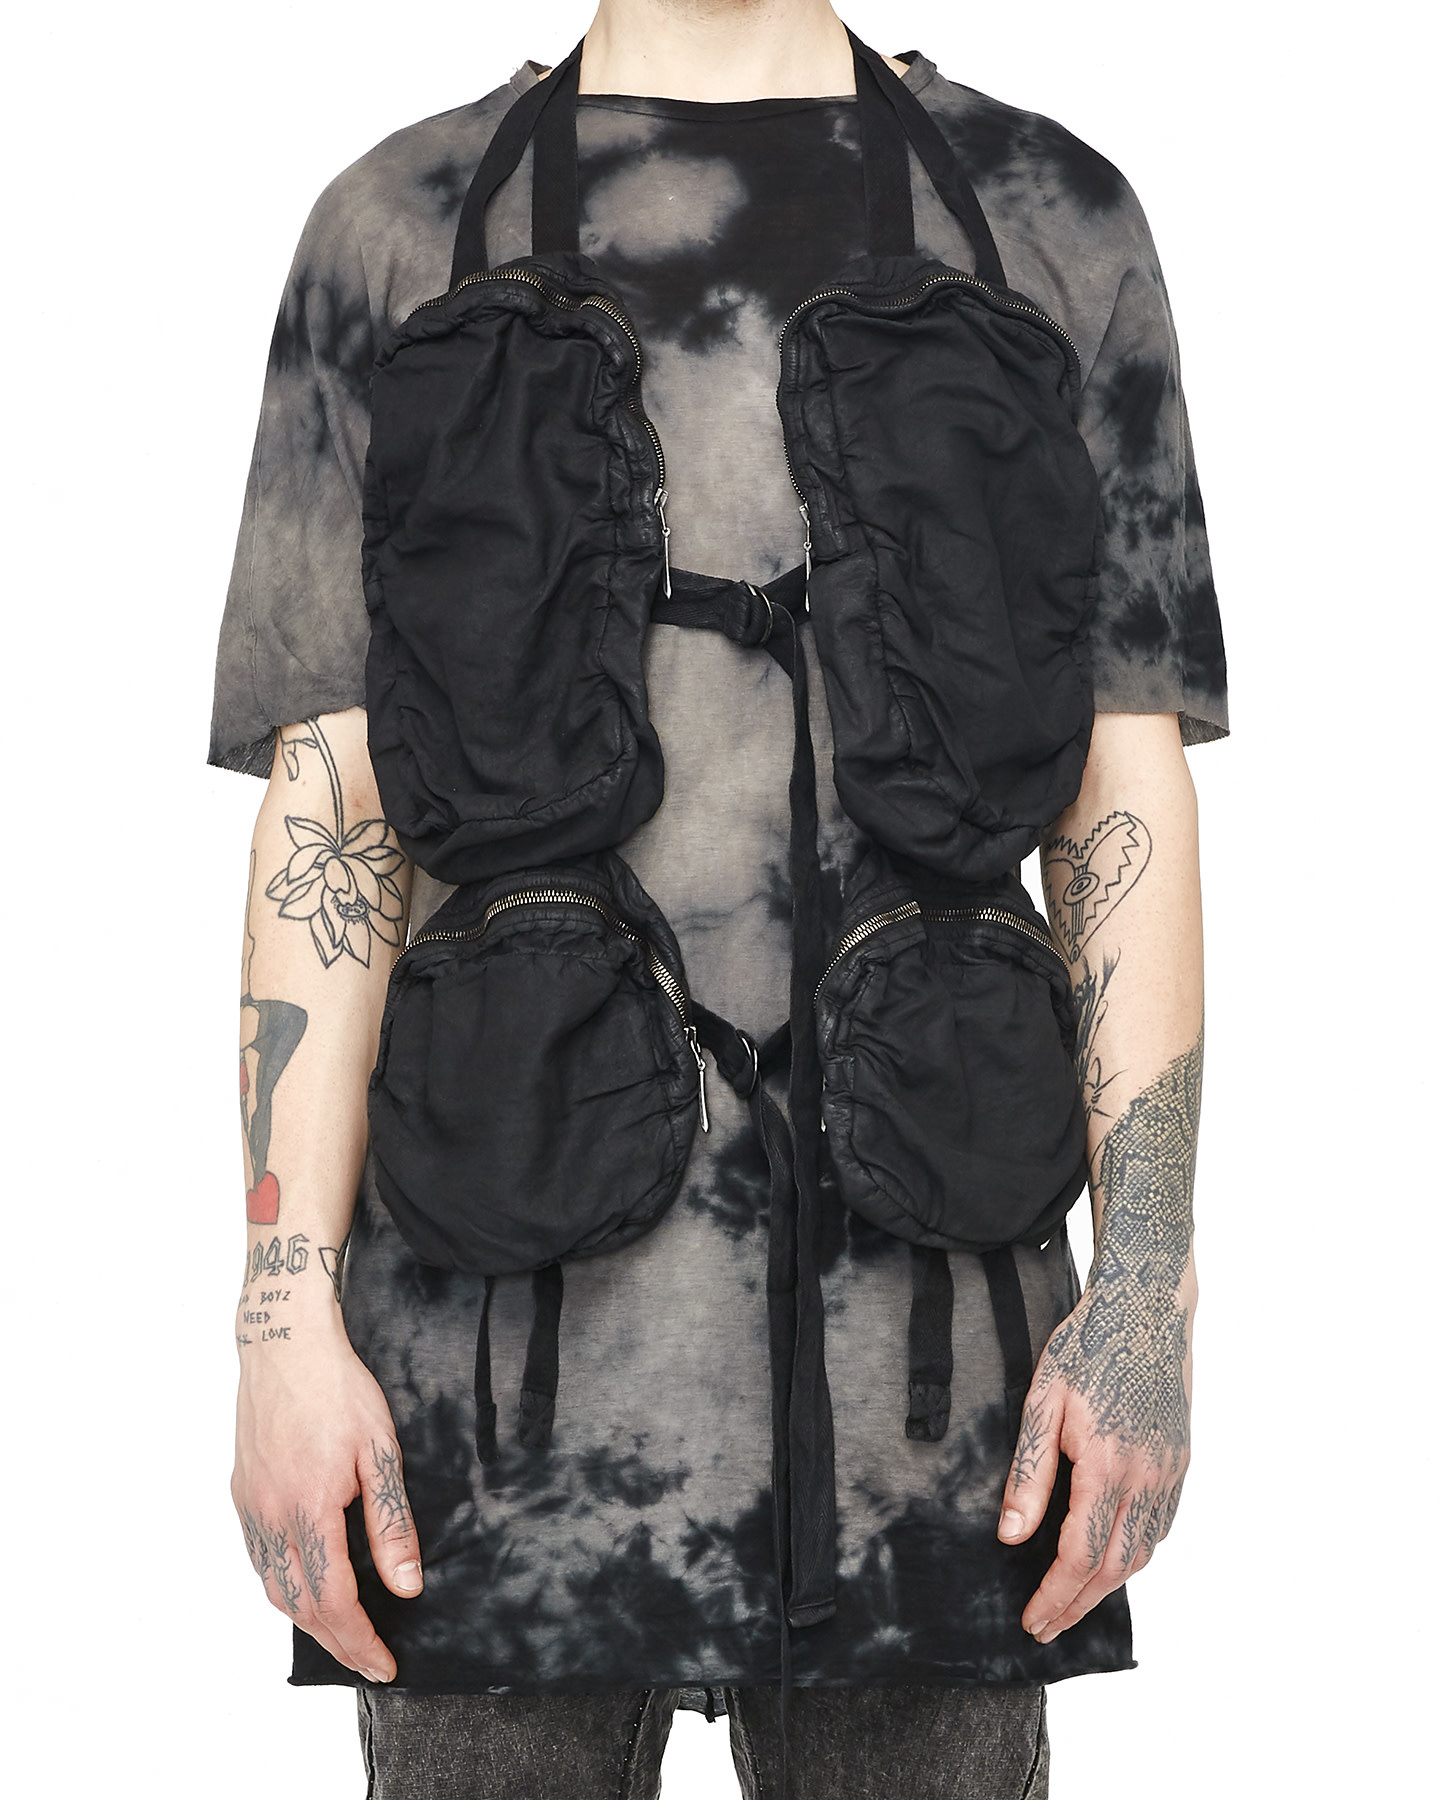 UTILITY HARNESS - RESIN